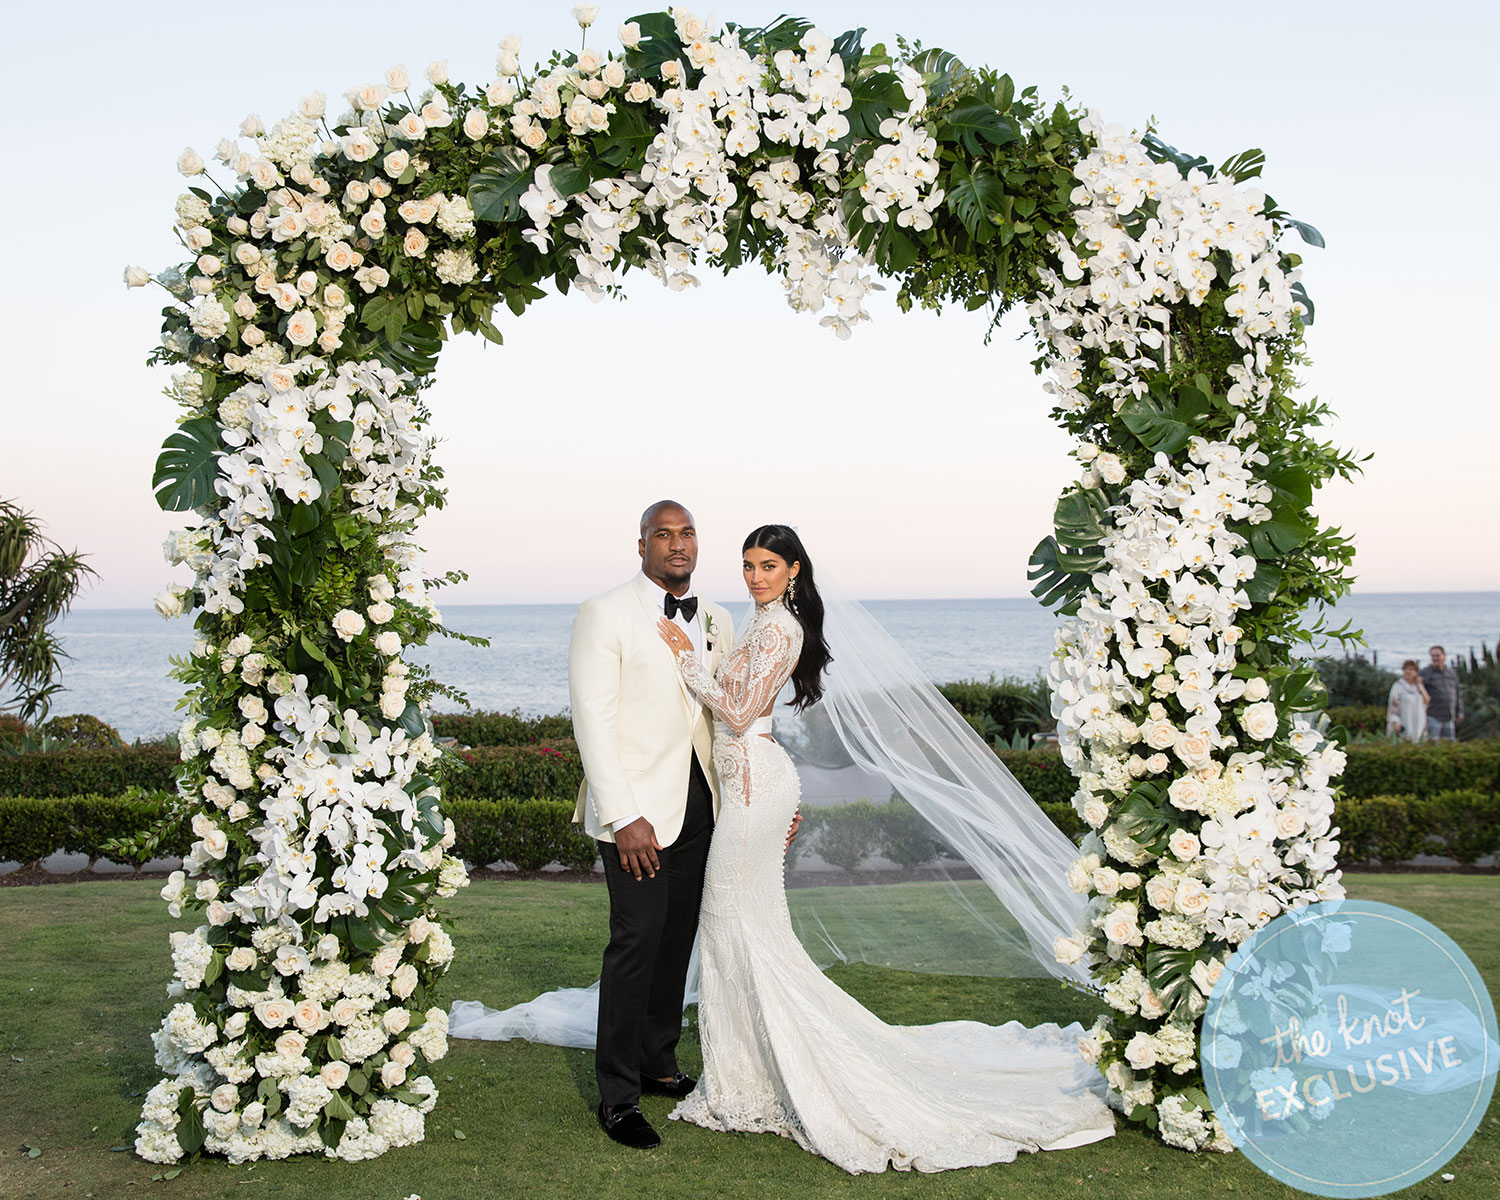 Nicole Williams And Larry English's Laguna Beach Wedding Album. One Kind Mens Wedding Wedding Rings. Fashion Bridal Engagement Rings. Guys Wedding Rings. Gawdy Engagement Rings. Cognac Engagement Rings. Kevin Hart Wedding Rings. Unisex Engagement Rings. Carriage Wedding Rings